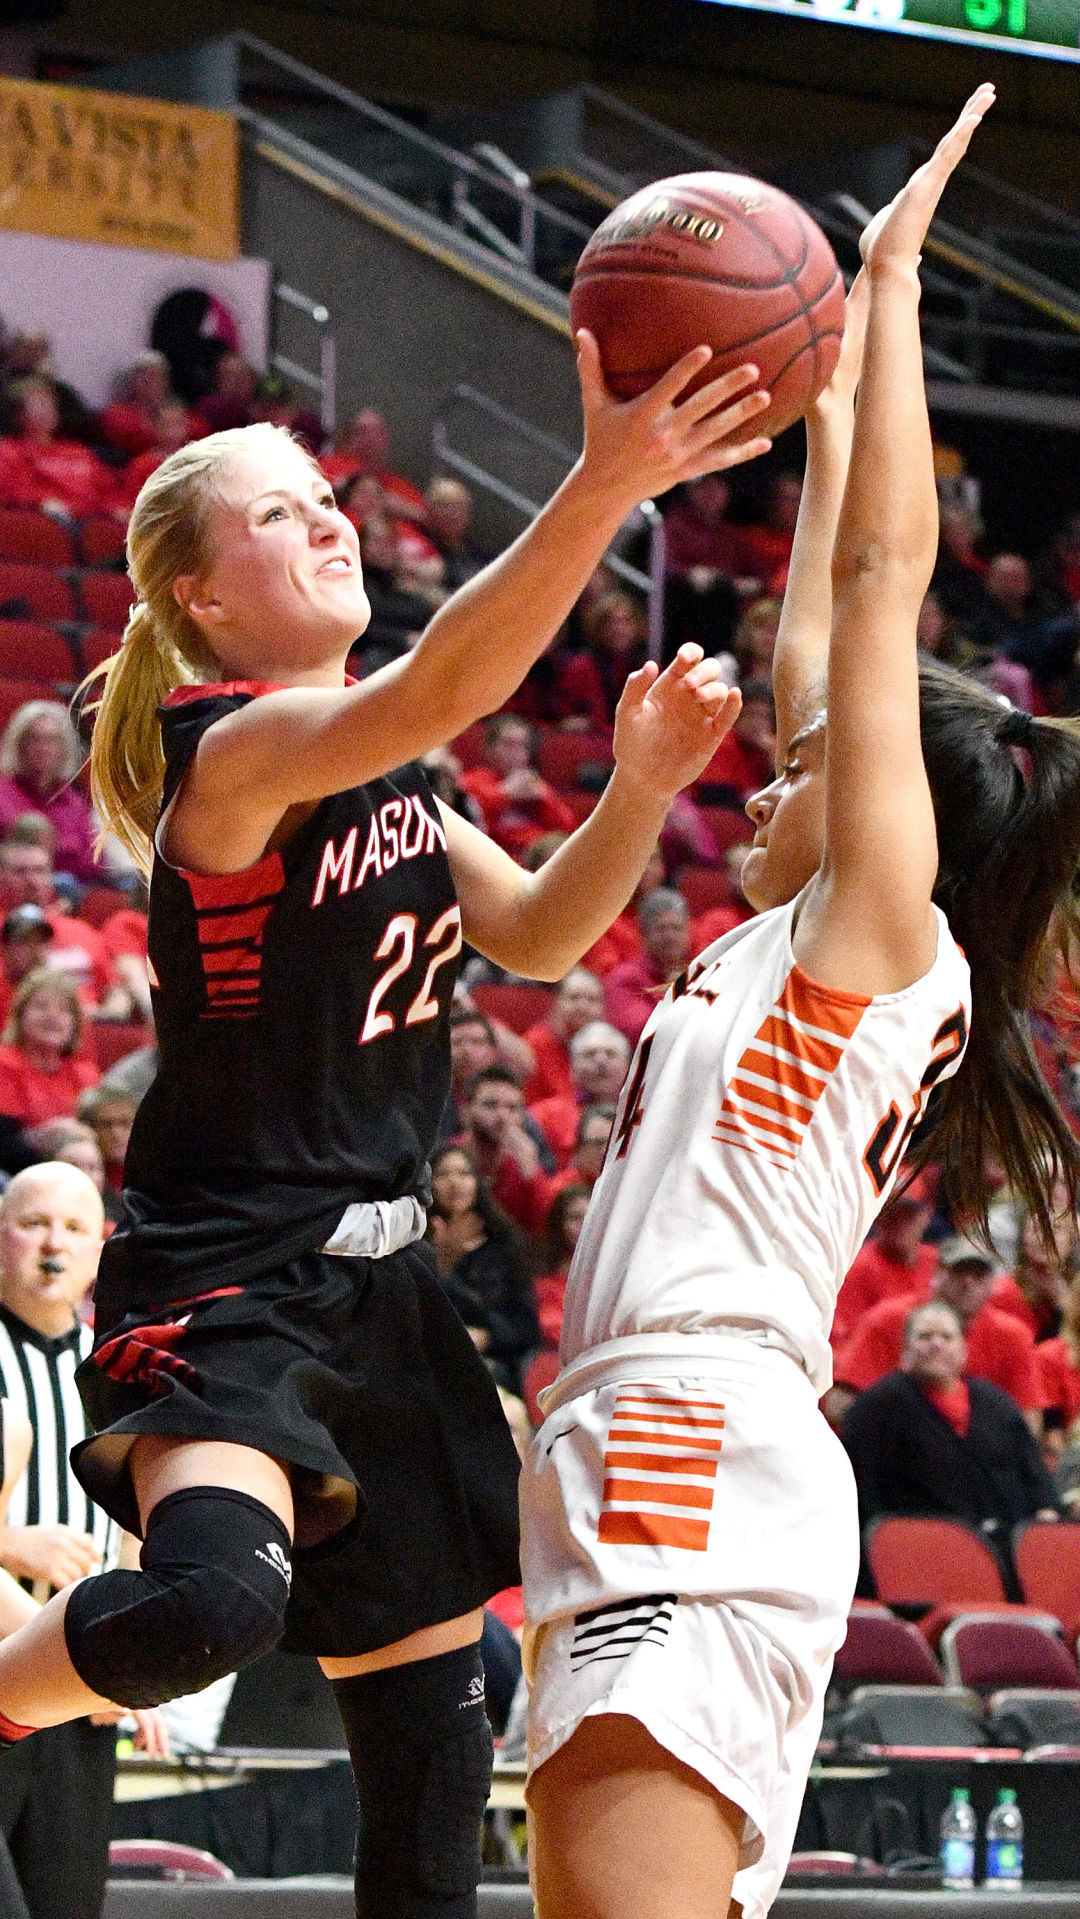 Mason City vs Grinnell state basketball